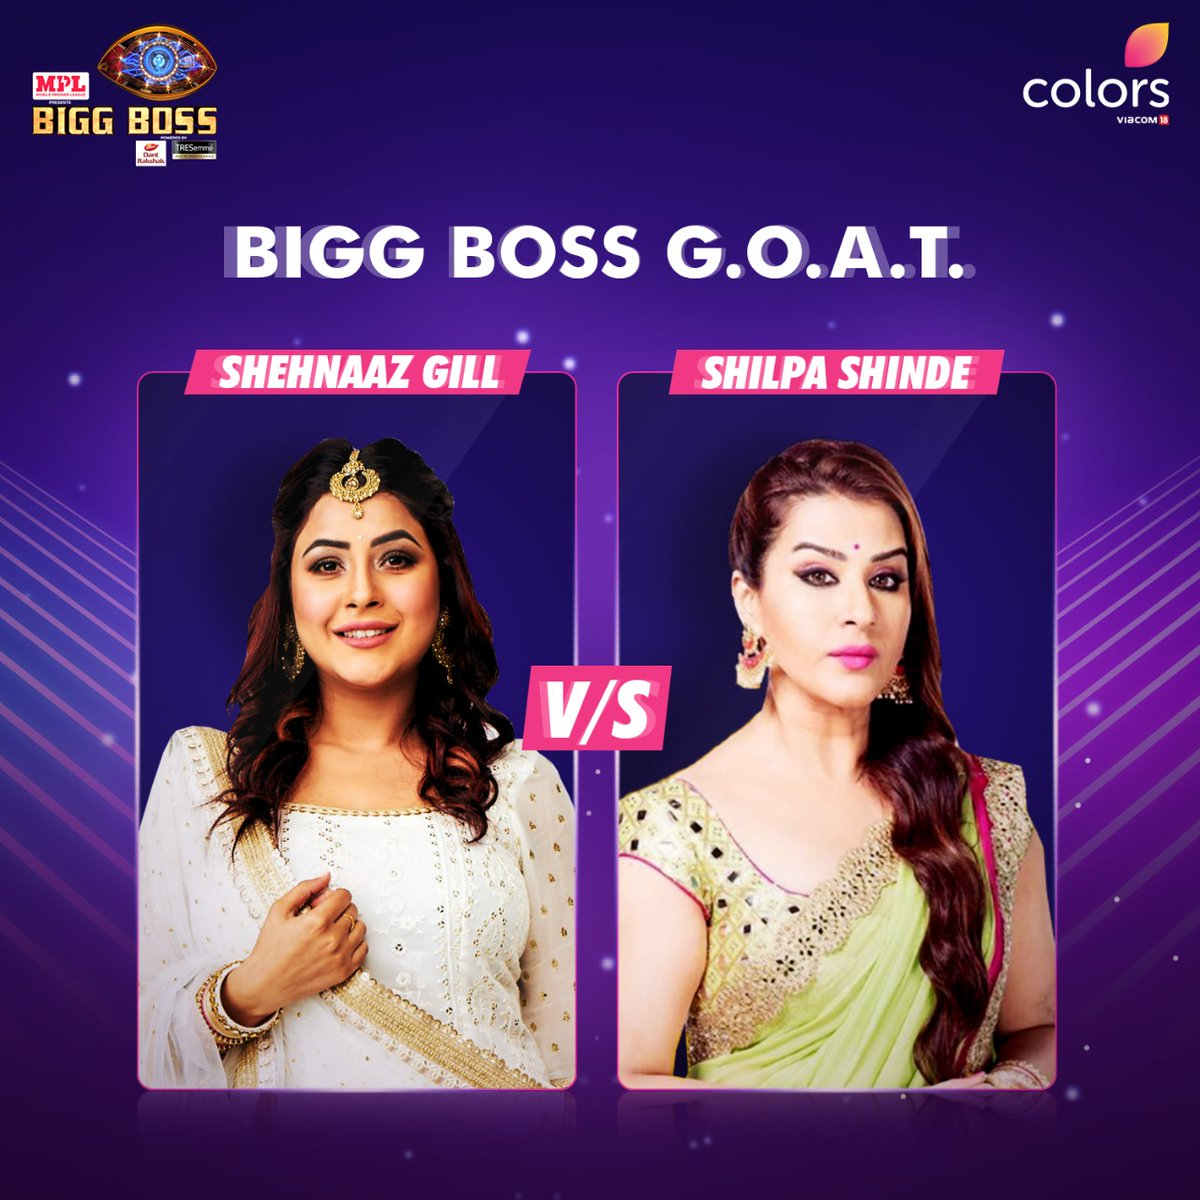 Dono hain entertainment ki complete packages!  @ishehnaaz_gill or #ShilpaShinde - who do you think is the #BiggBossGOAT?  #BB14 #BiggBoss2020 #BiggBoss @BeingSalmanKhan @PlayMPL https://t.co/DbQ2lXKnuW